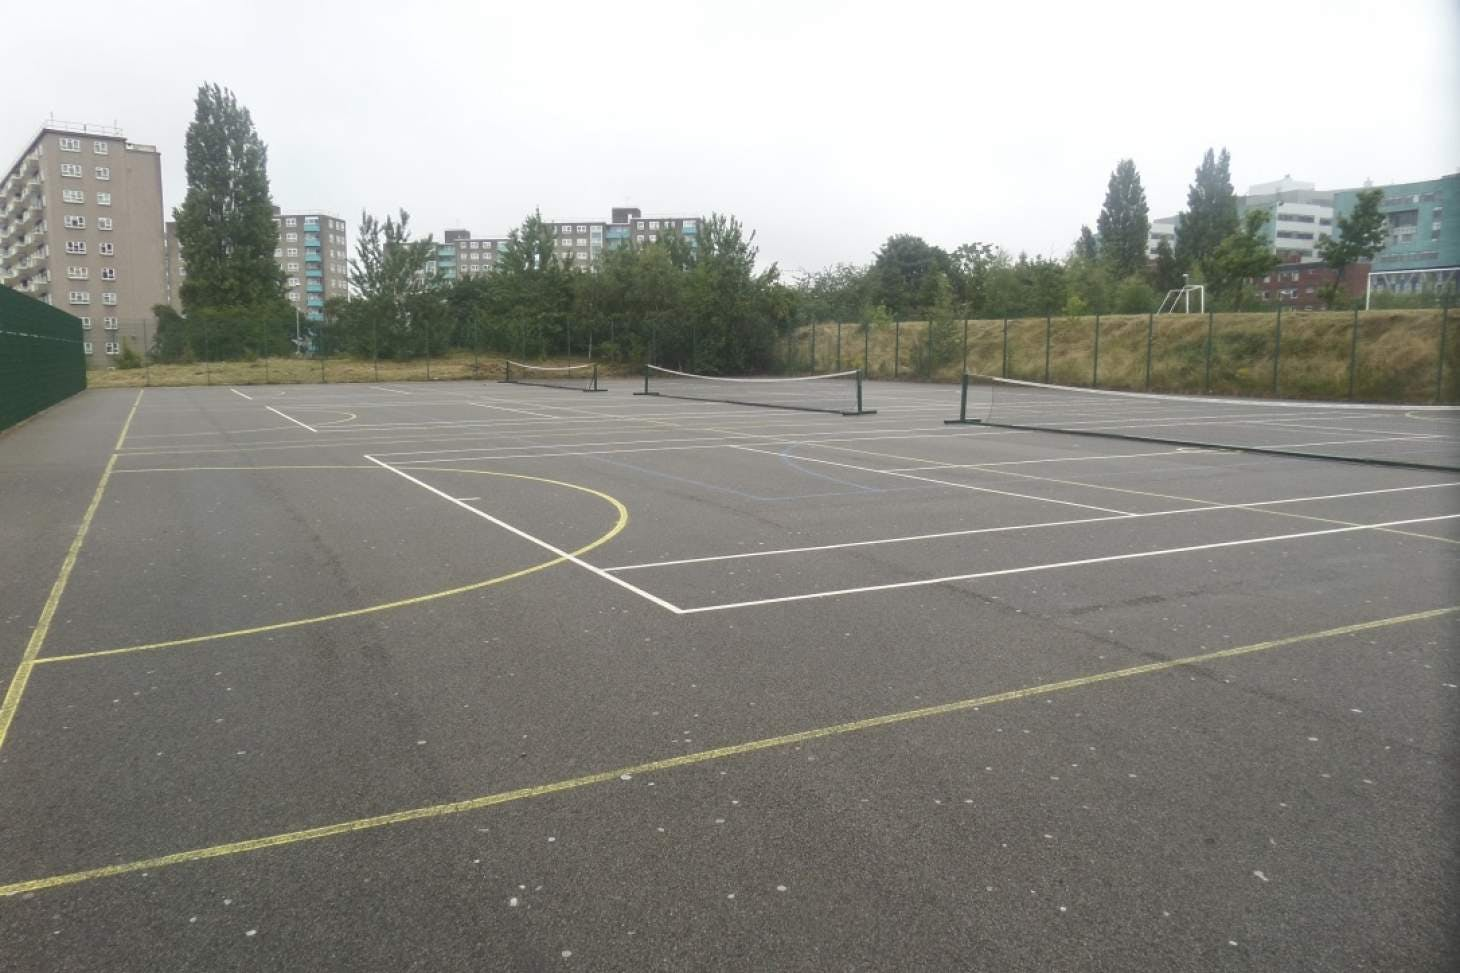 Co-op Academy Leeds Outdoor | Hard (macadam) netball court